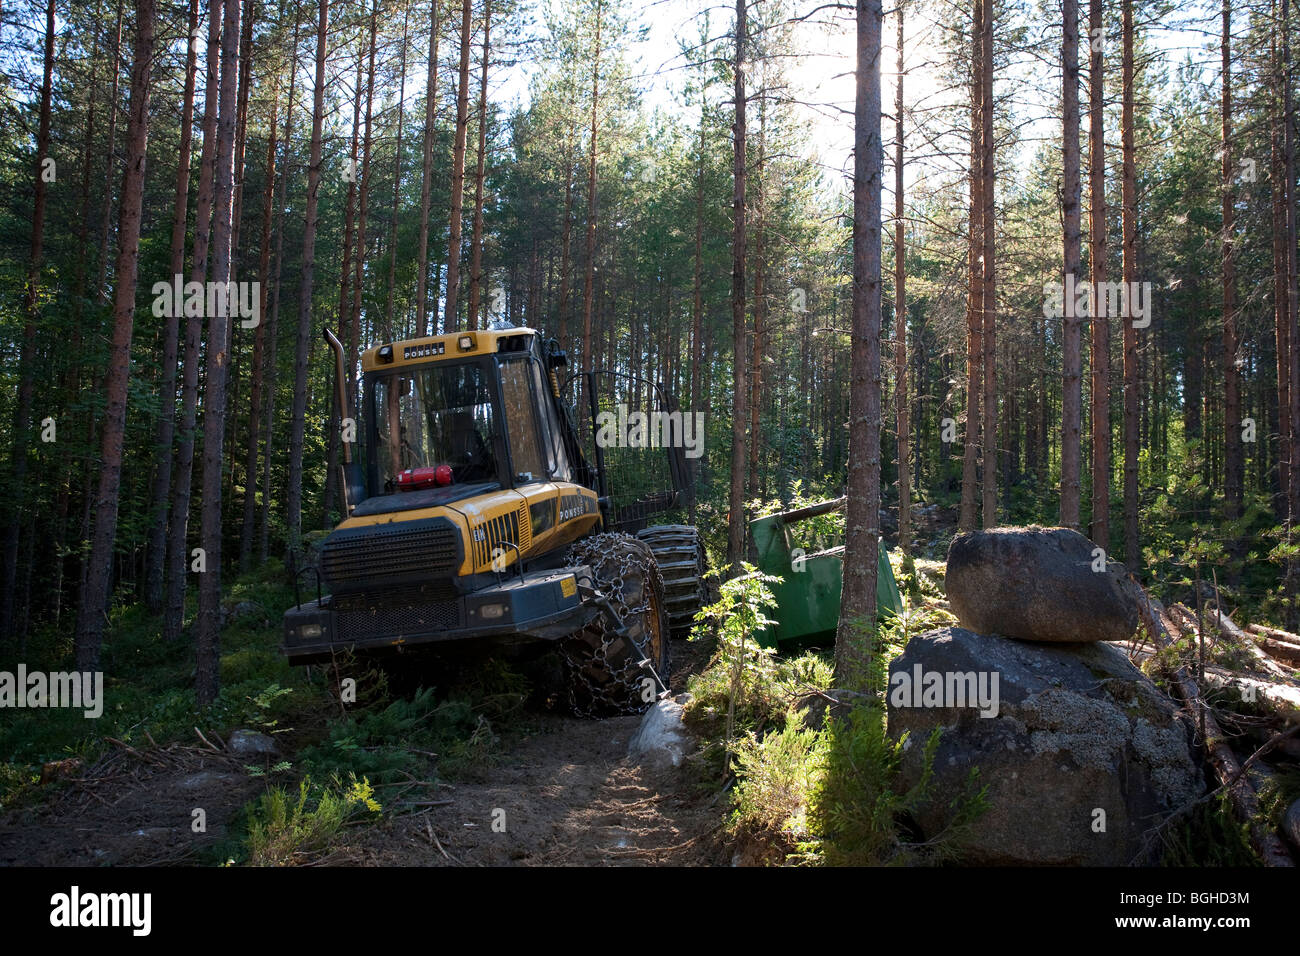 Yellow Ponsse Elk forest harvester / forwarder in the young Finnish pine ( pinus sylvestris ) forest , Finland - Stock Image